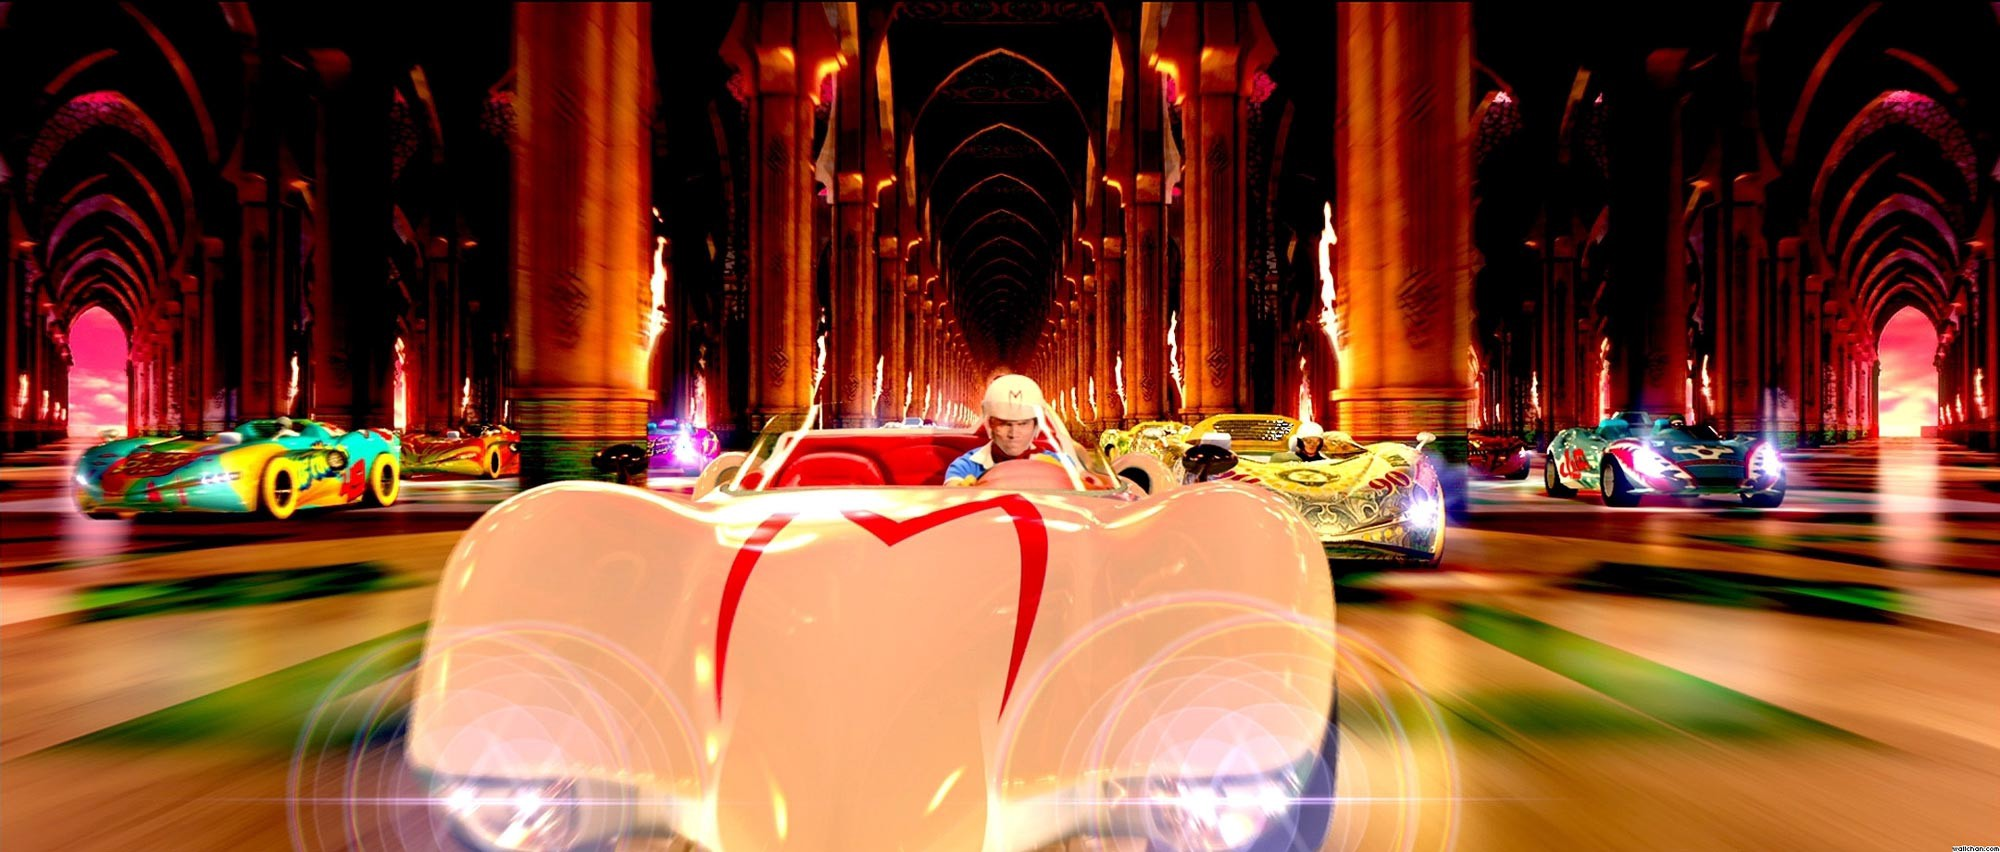 speed-racer-1.jpeg